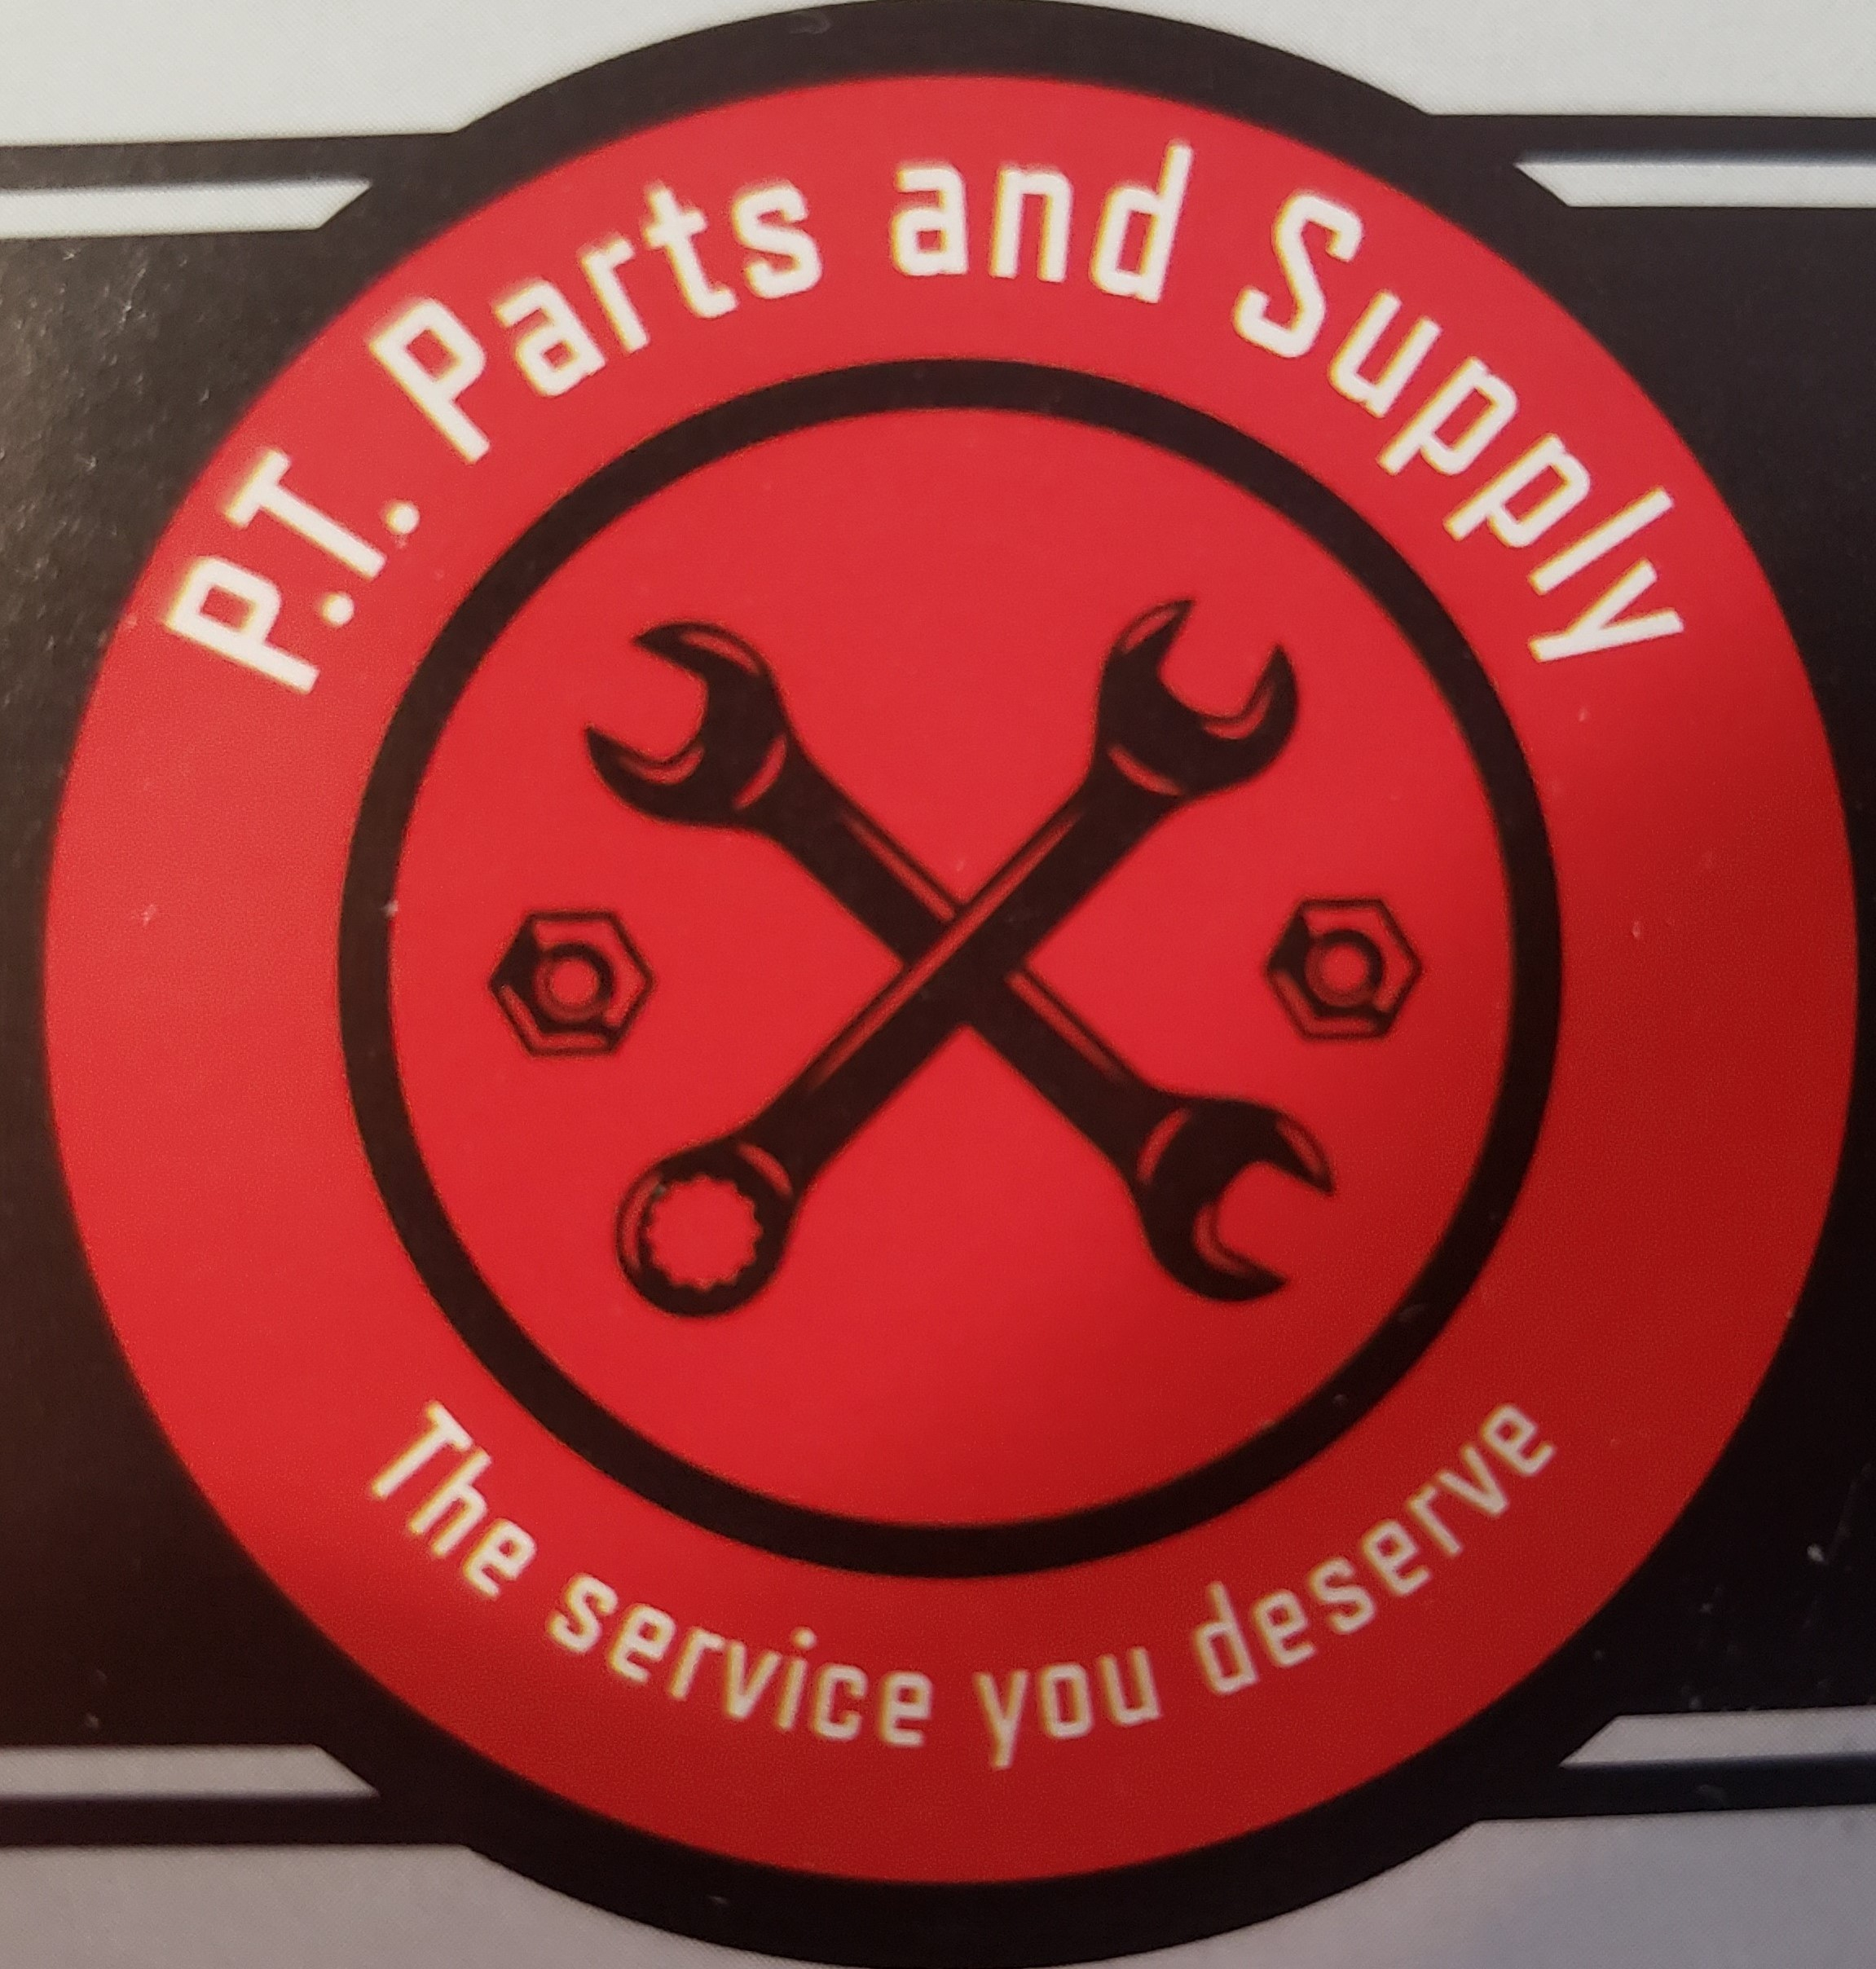 P.T. Parts and Supply